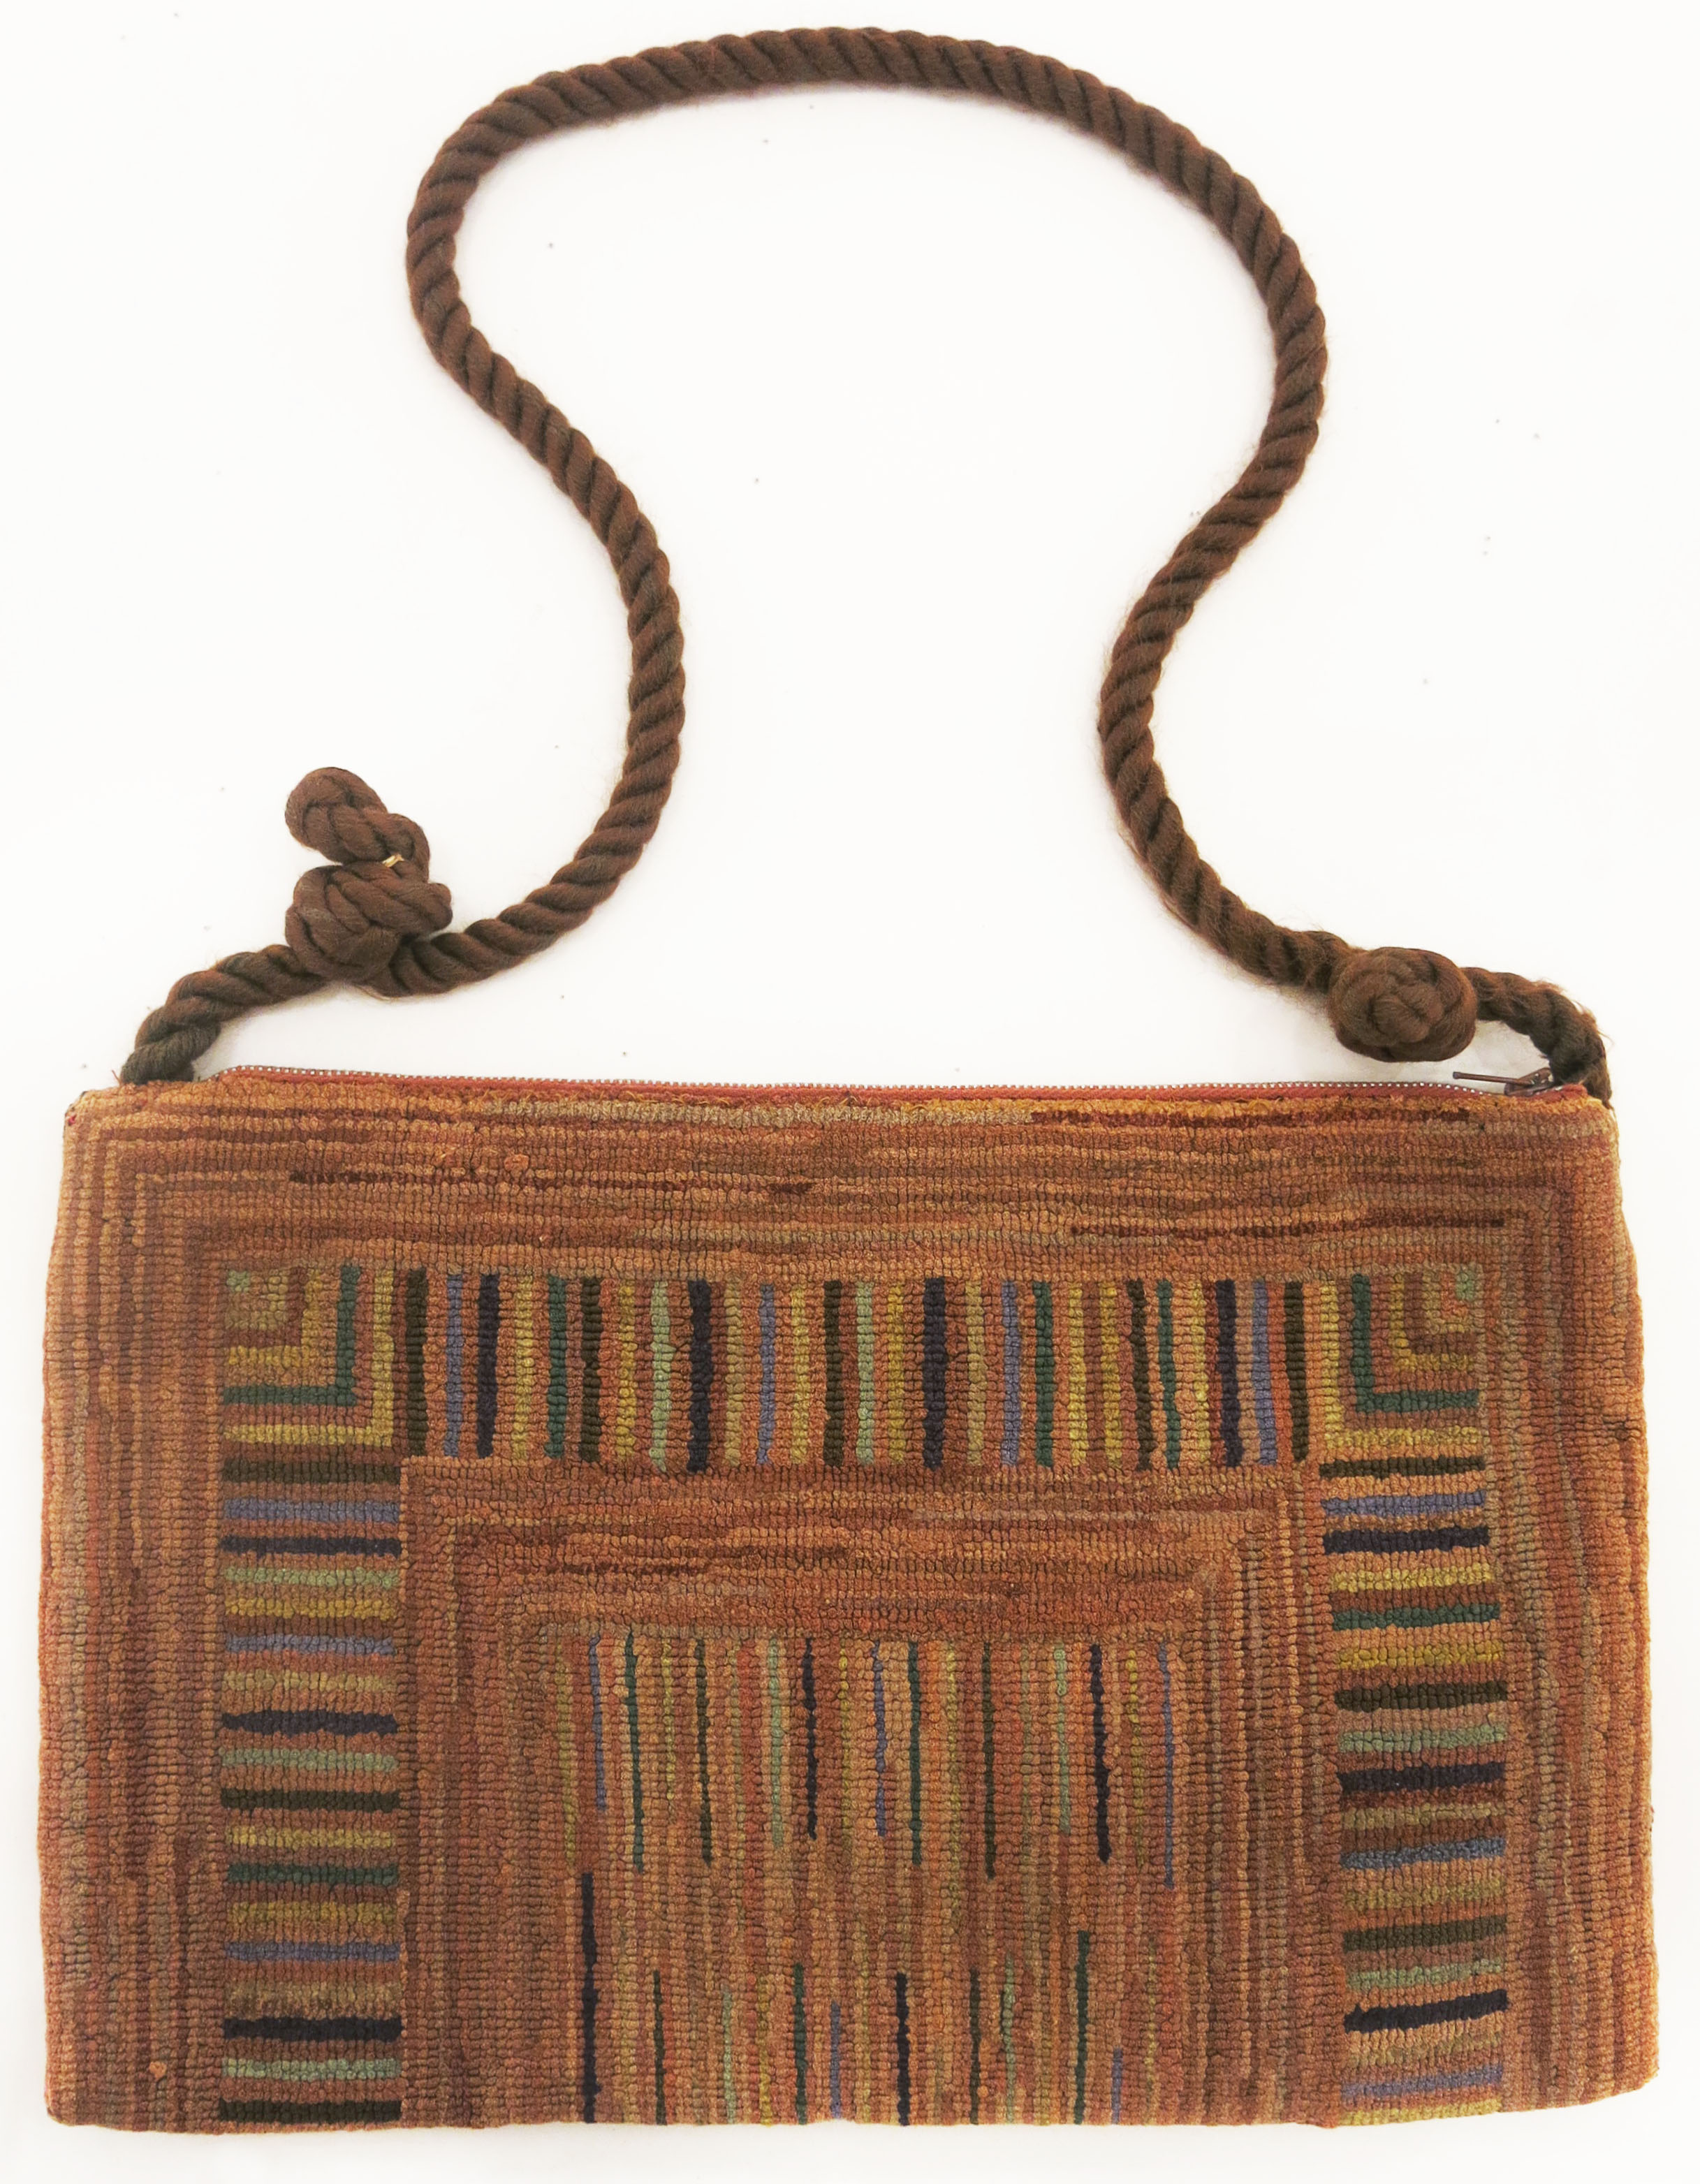 Anonymous, The Grenfell Mission, Geometric Handbag, c. 1940, silk and rayon; dyed, 9 1/2h x 14w in.